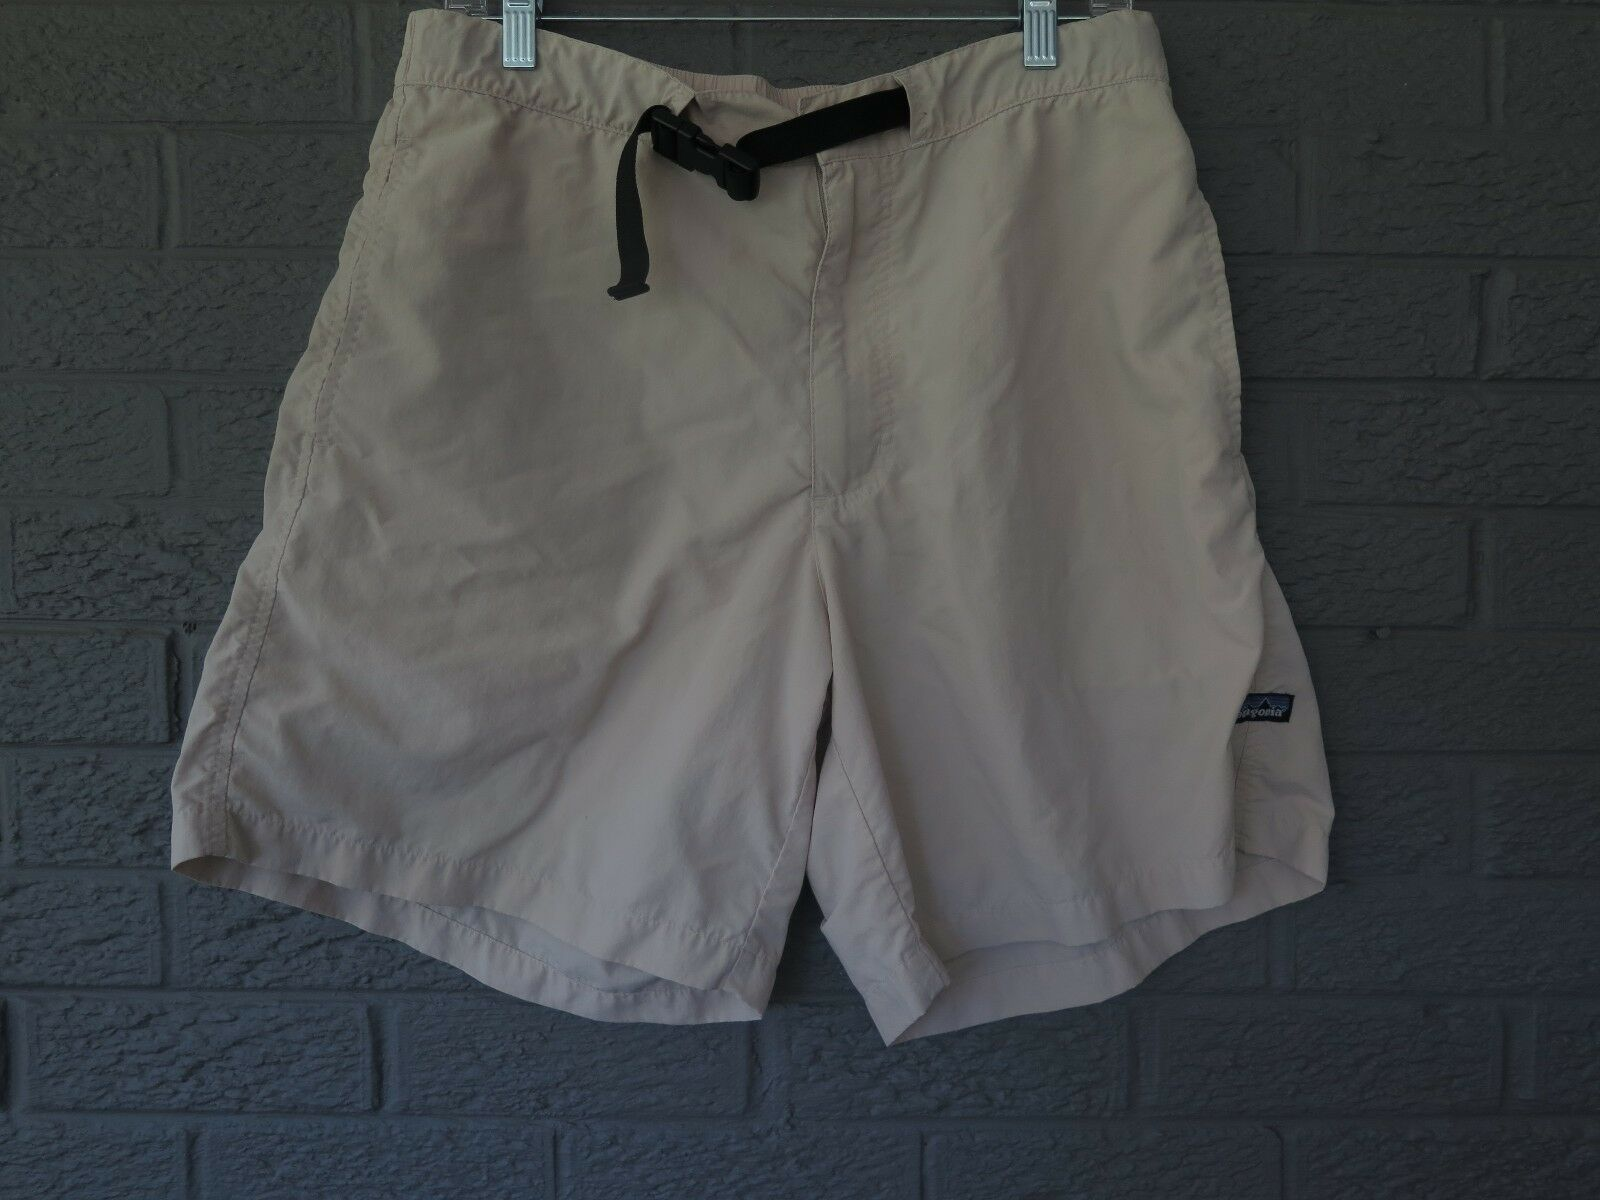 PATAGONIA LIGHTWEIGHT OUTDOOR HIKING  SHORTS IN STONE SIZE LARGE  cheap sale outlet online